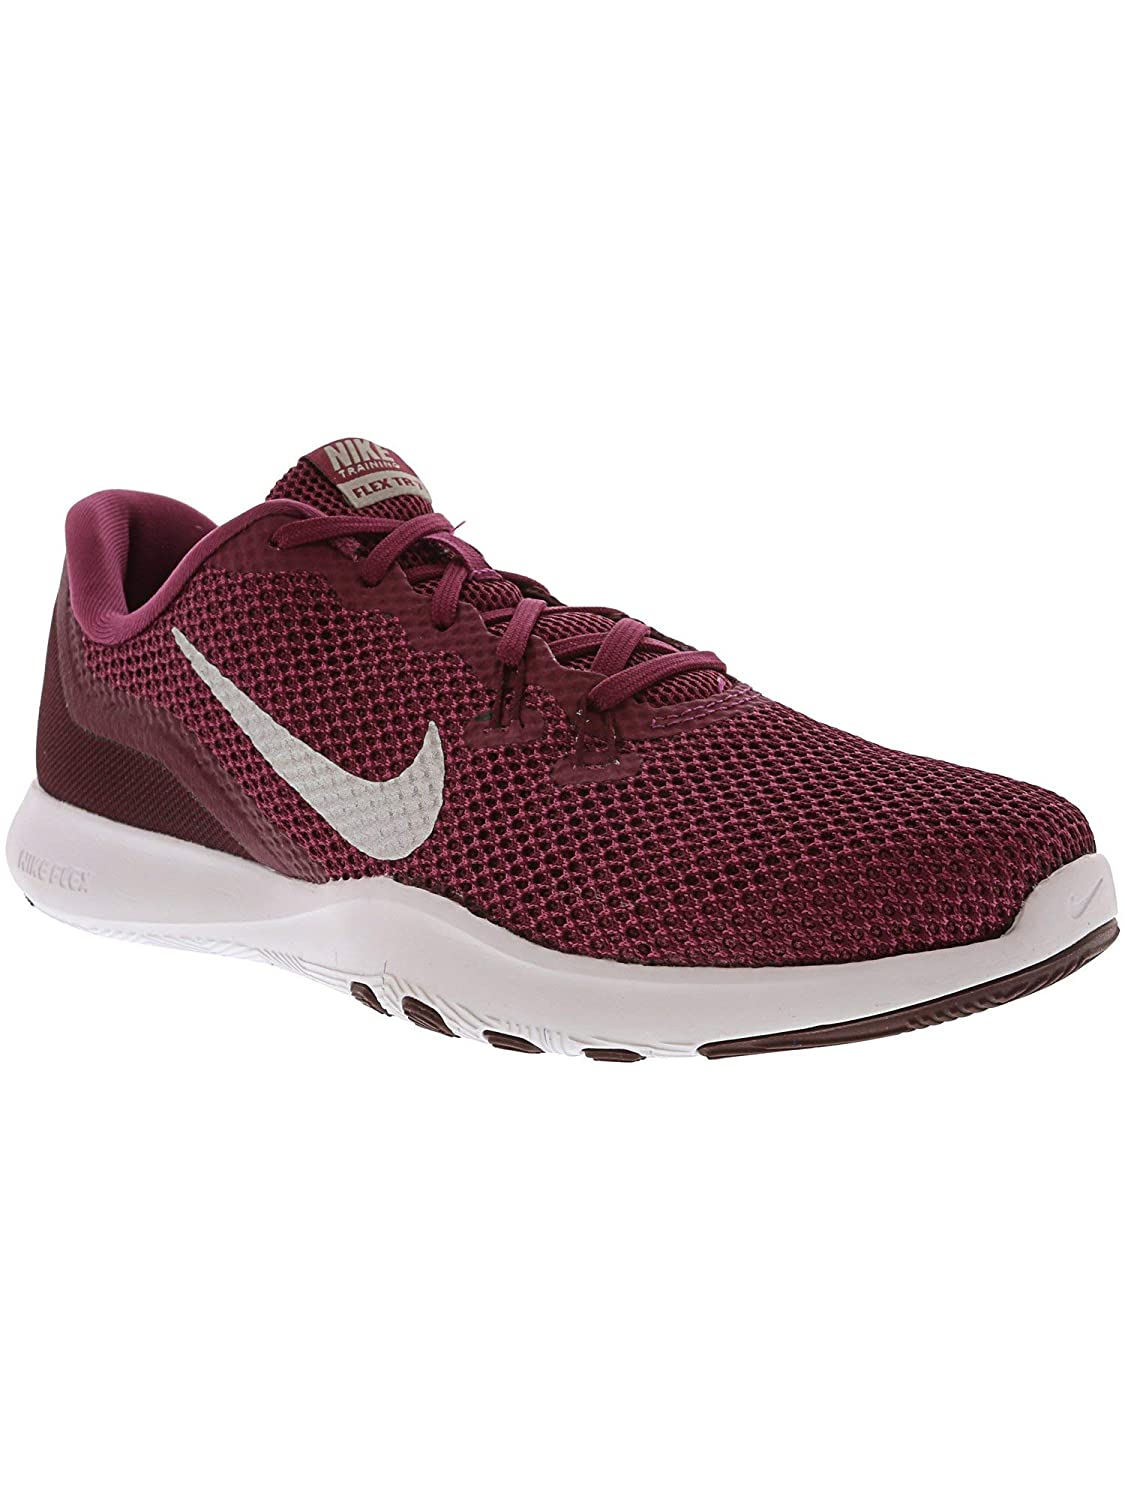 Nike Women s Flex Trainer 7